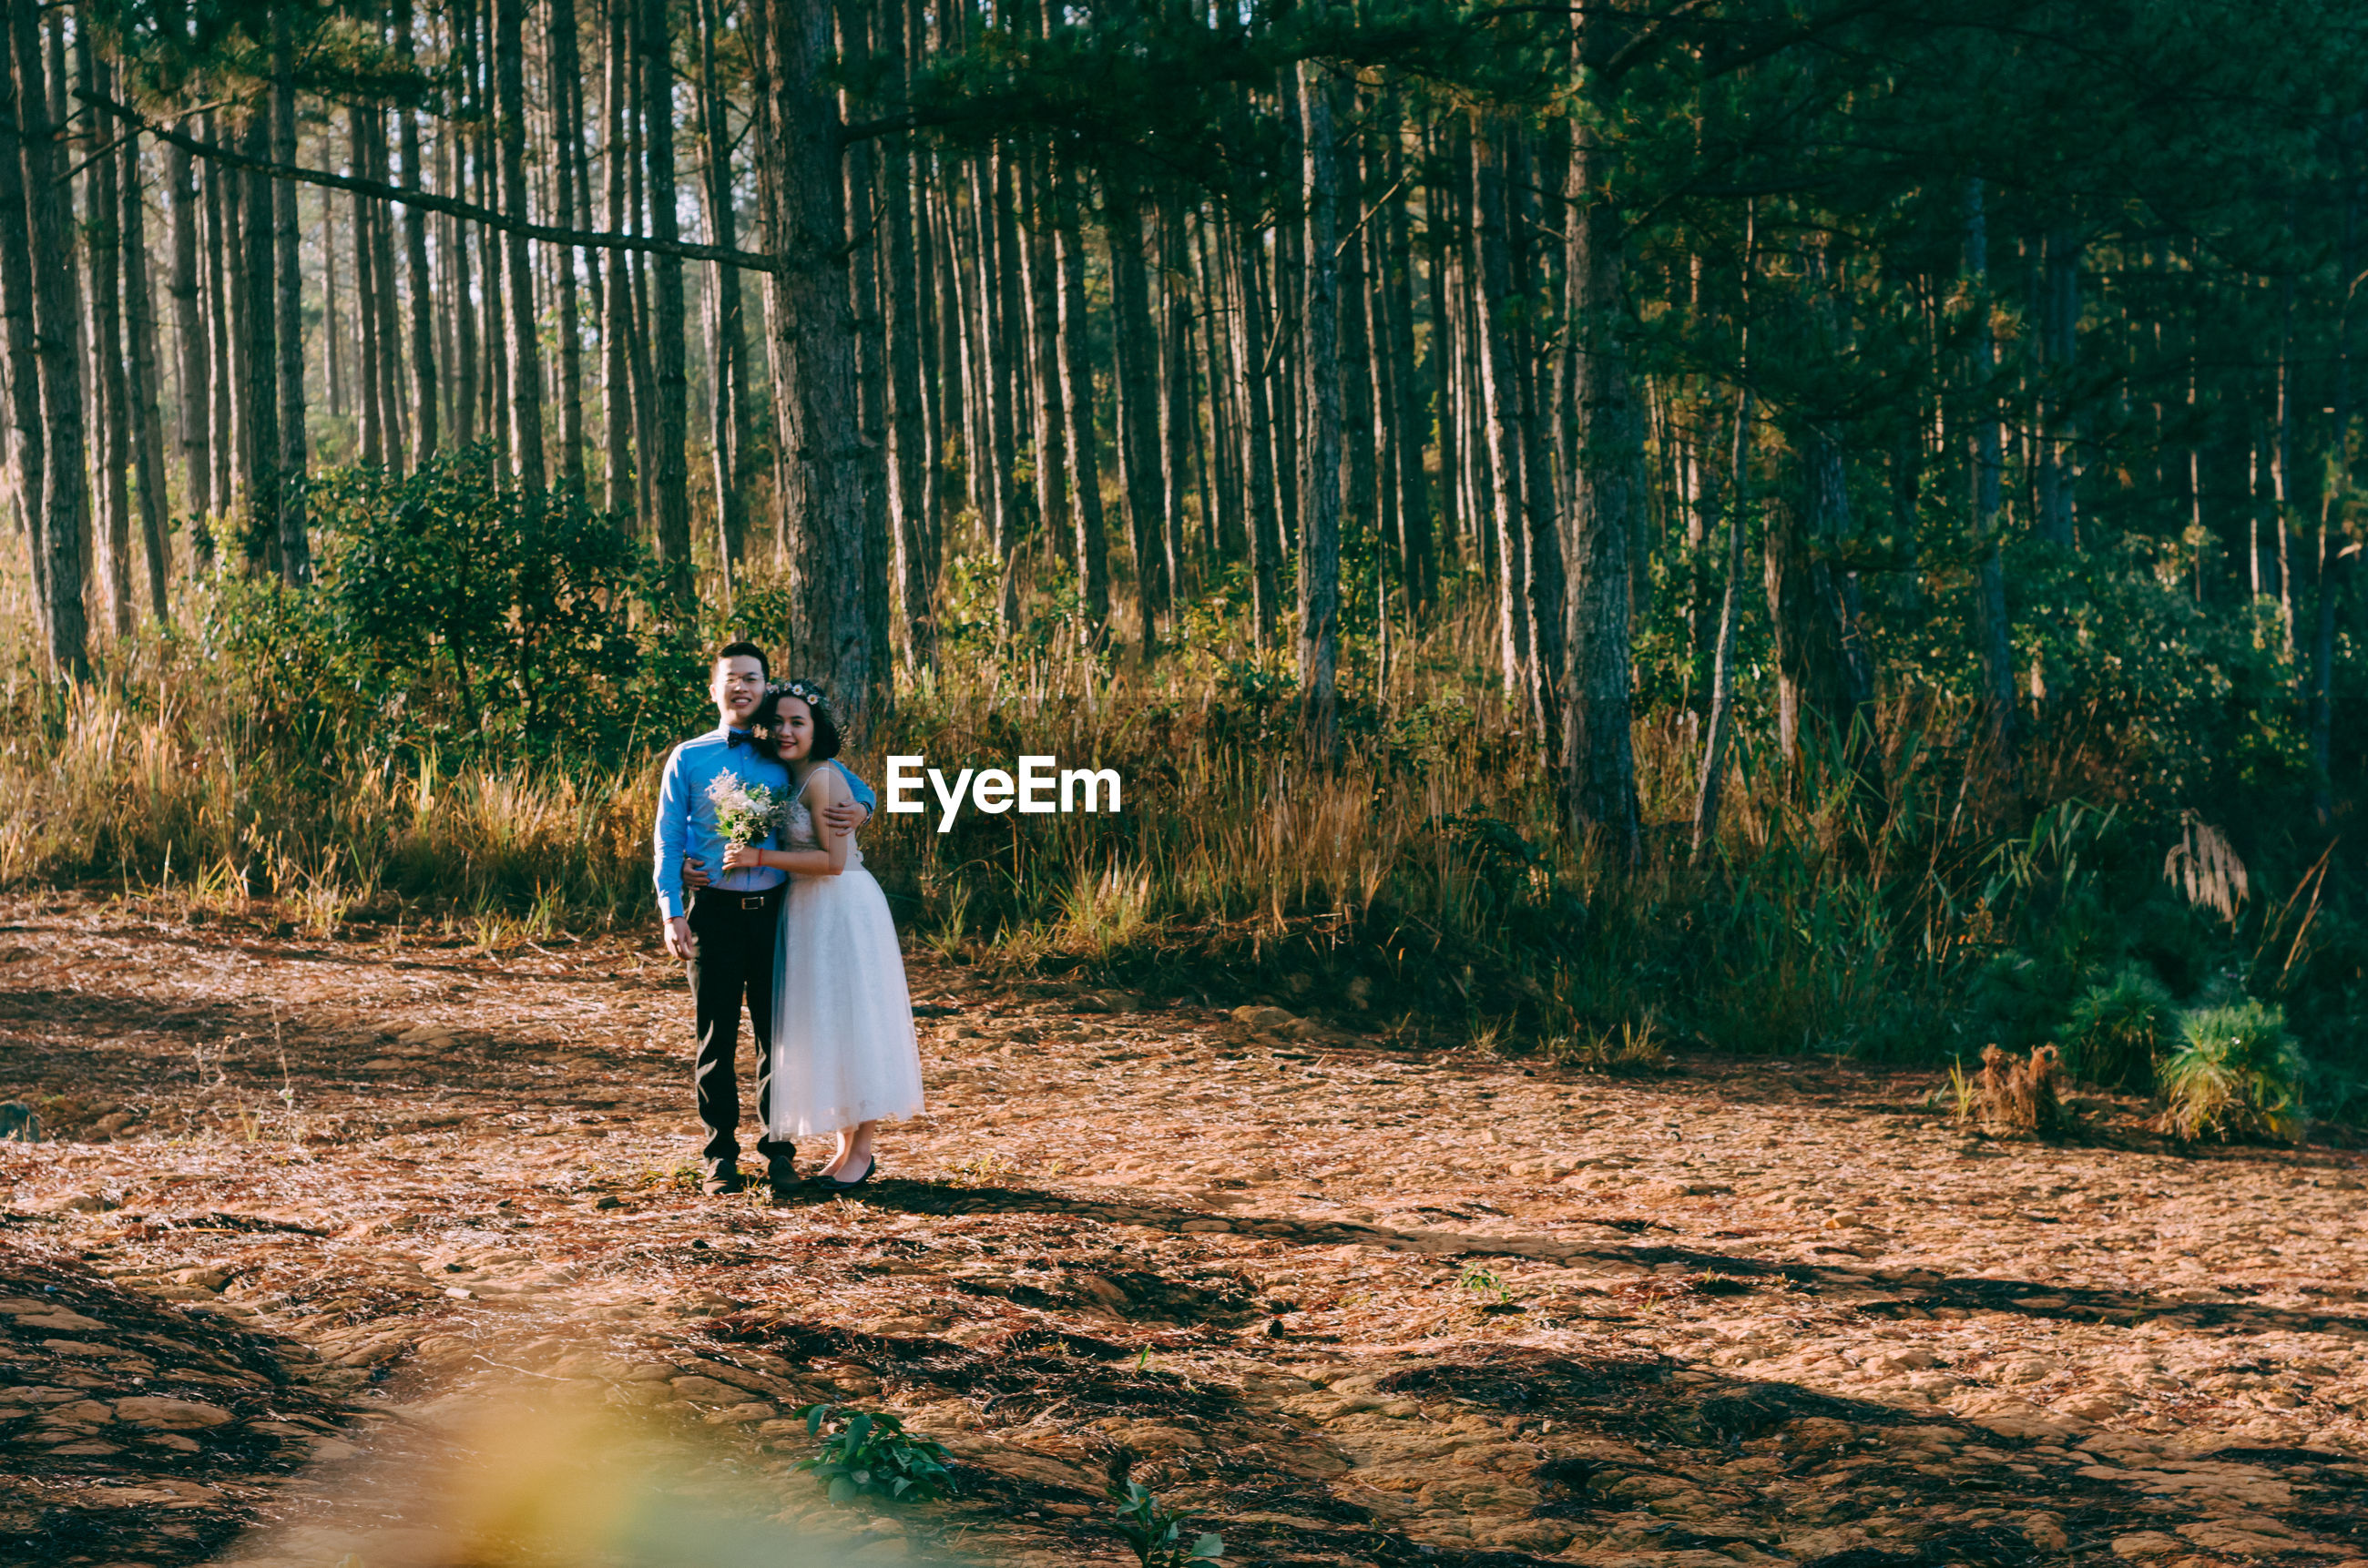 Bride and bridegroom standing in forest